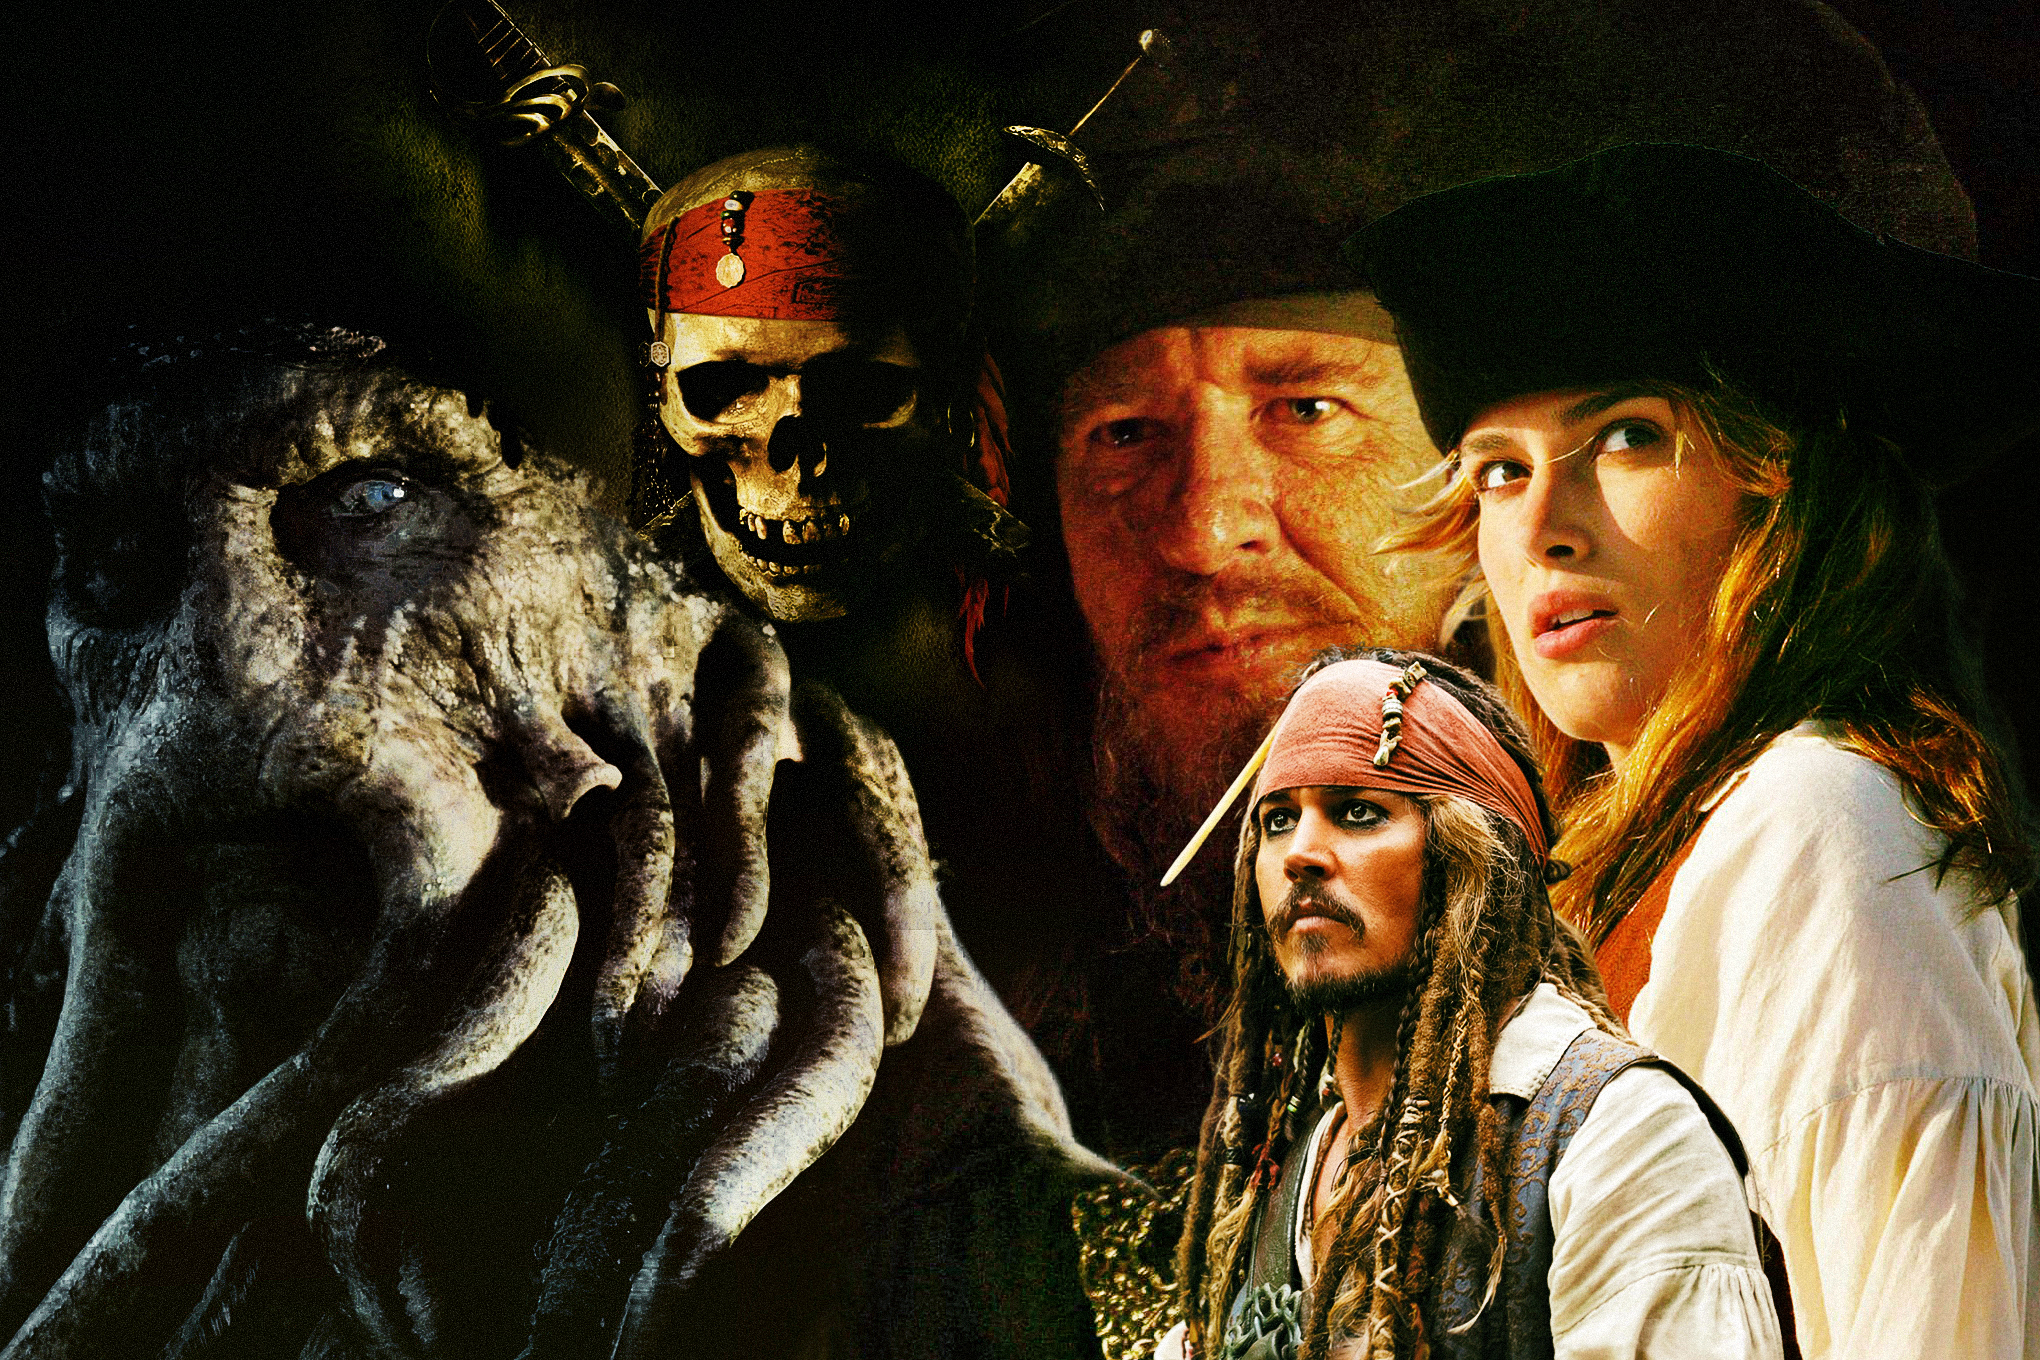 Photo montage feature still images from the movie Pirates of the Caribbean